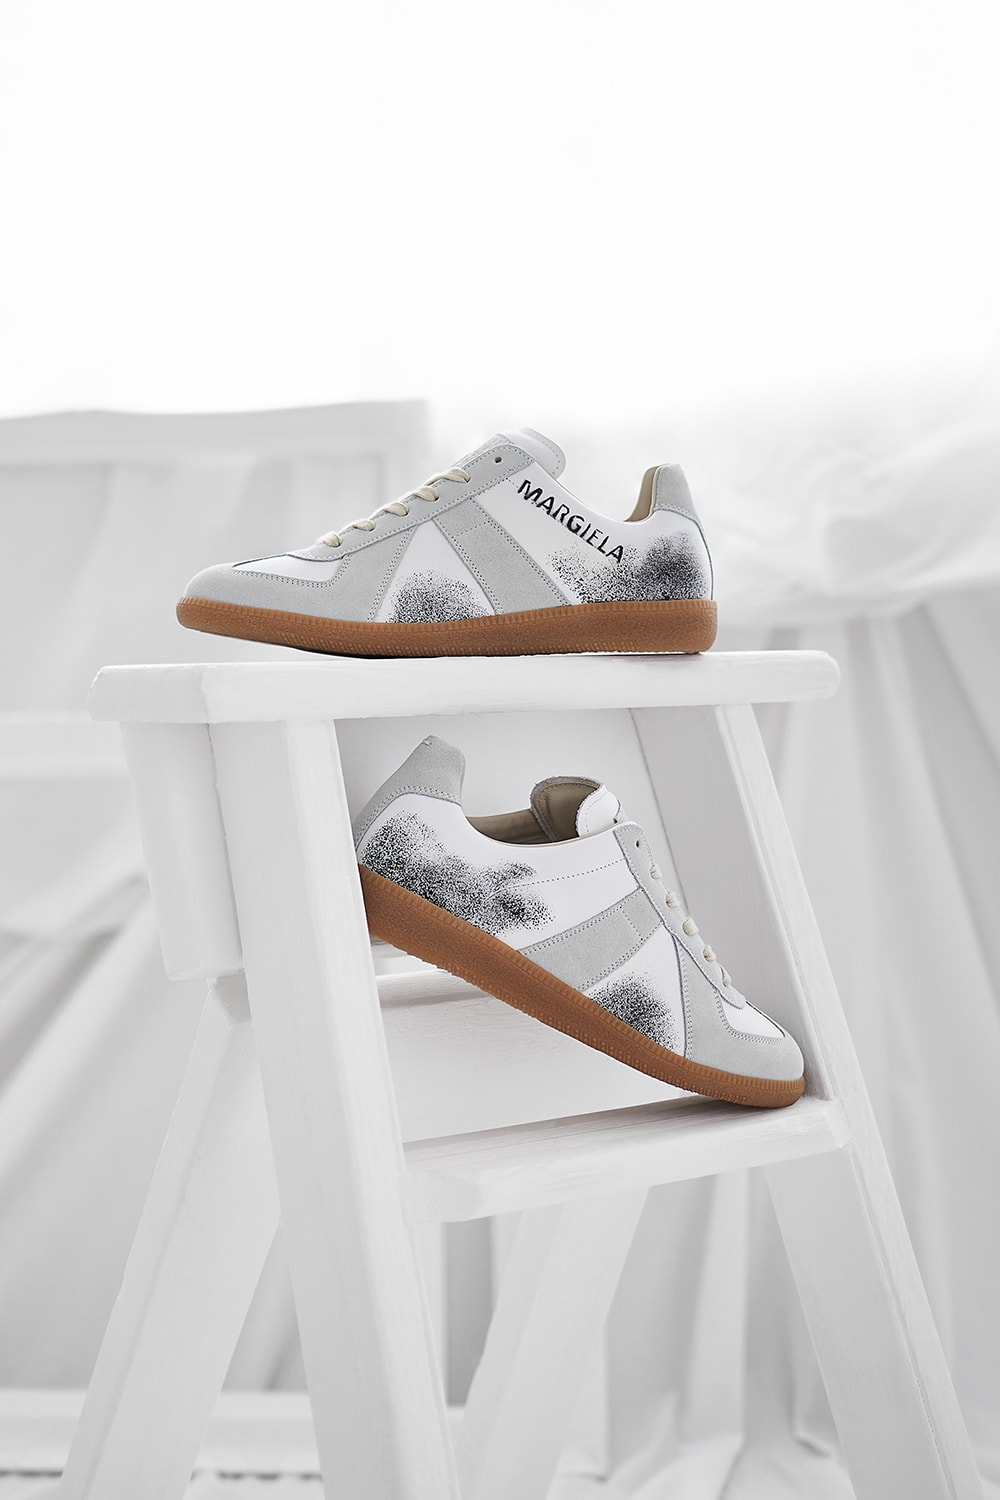 Maison Margiela Replica 22 Graffiti Sneaker END. Exclusive - S57WS0236-P2803-H4108